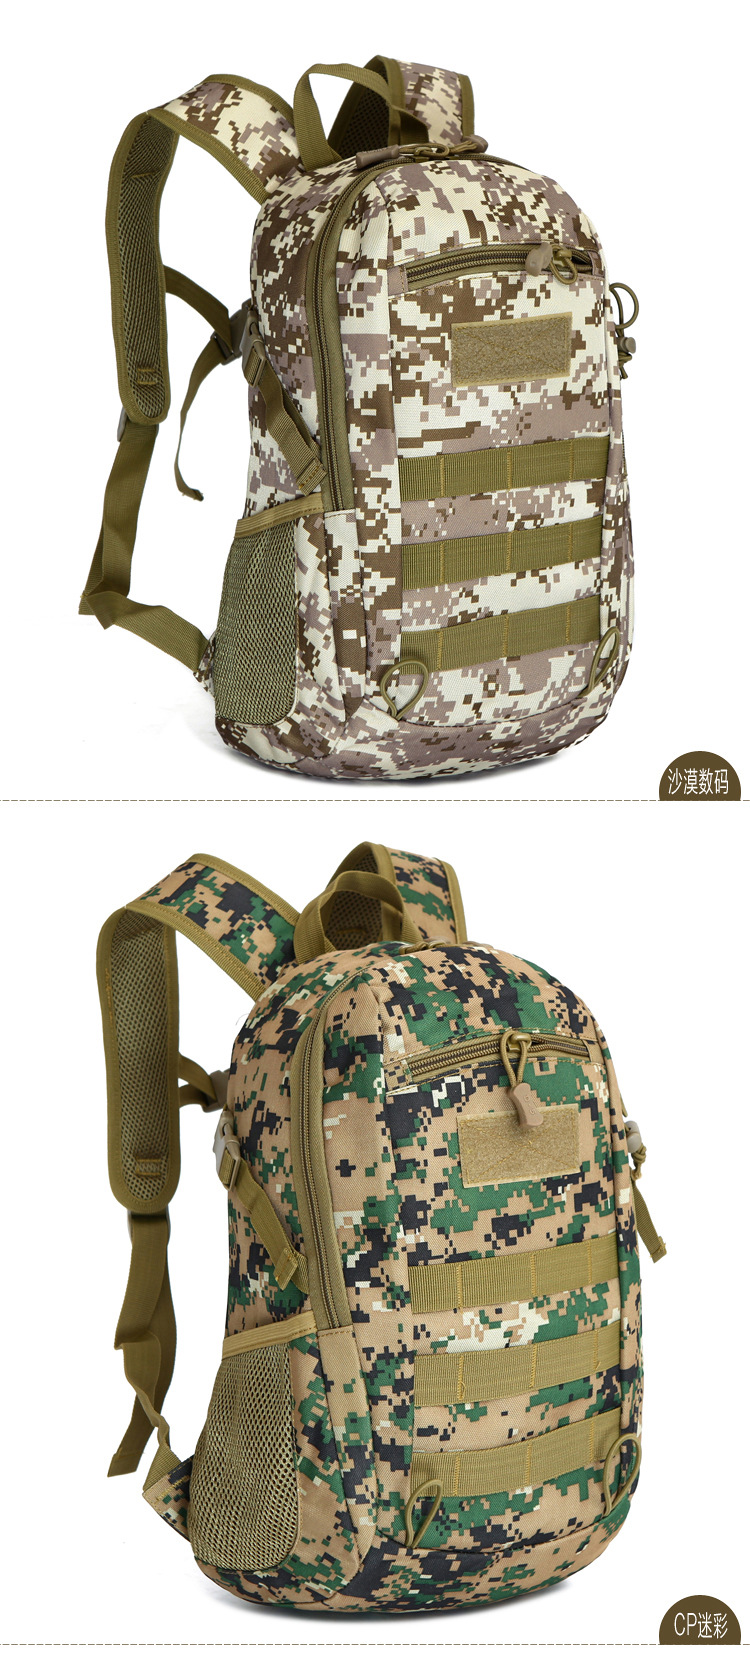 d127c6f9bb0 2017 Fashion men s backpacks Small camouflage backpack cool high quality  school bags for teenagers boys Travel Men Shoulder Bag. -1 05